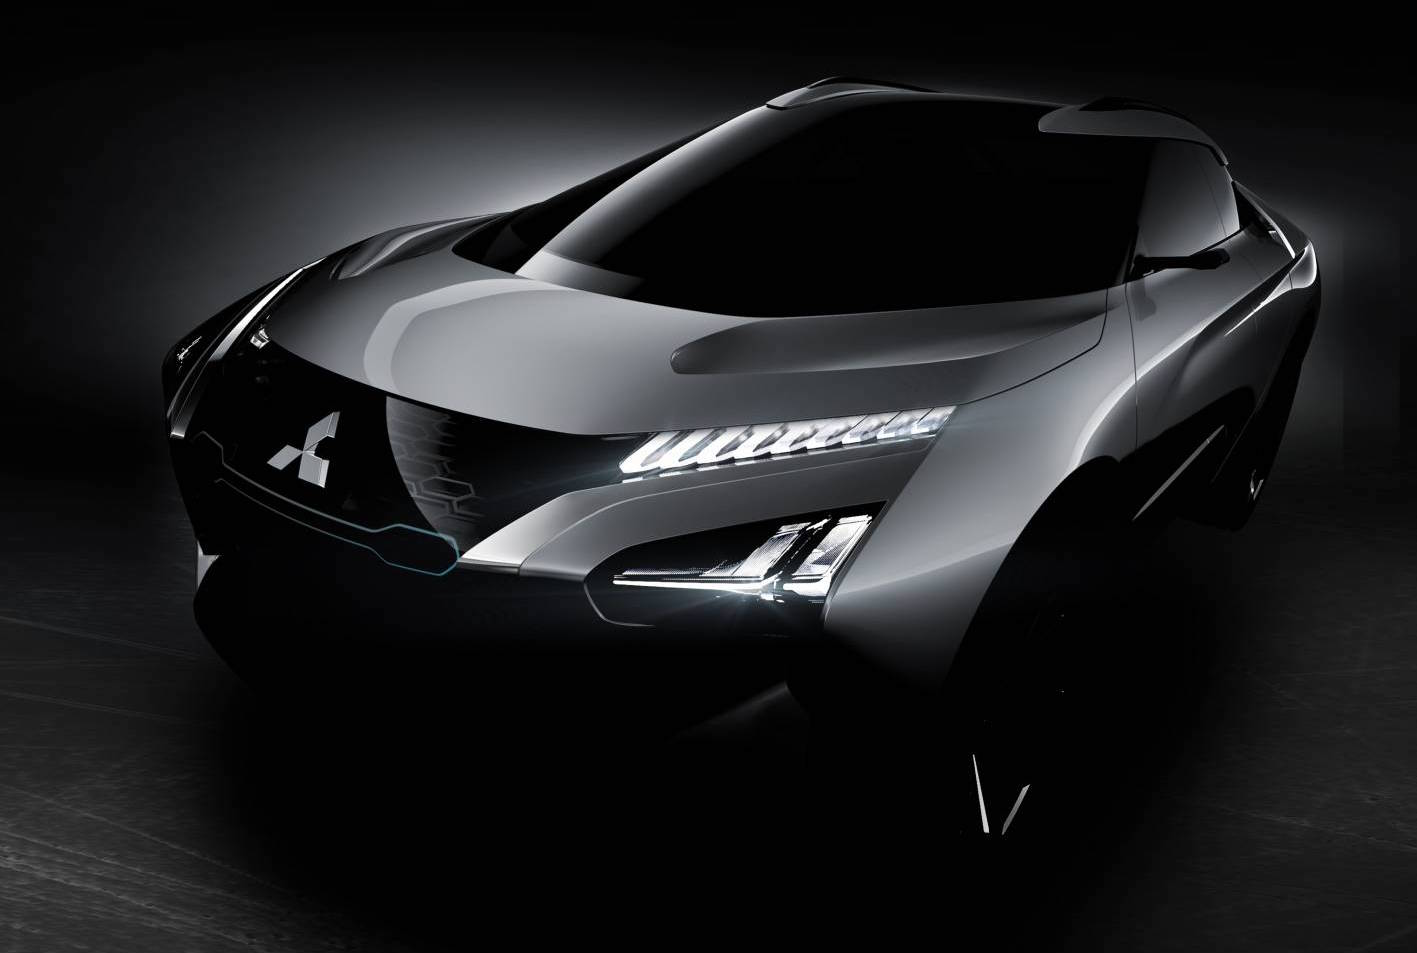 Mitsubishi e-Evolution concept puts artificial intelligence in the spotlight